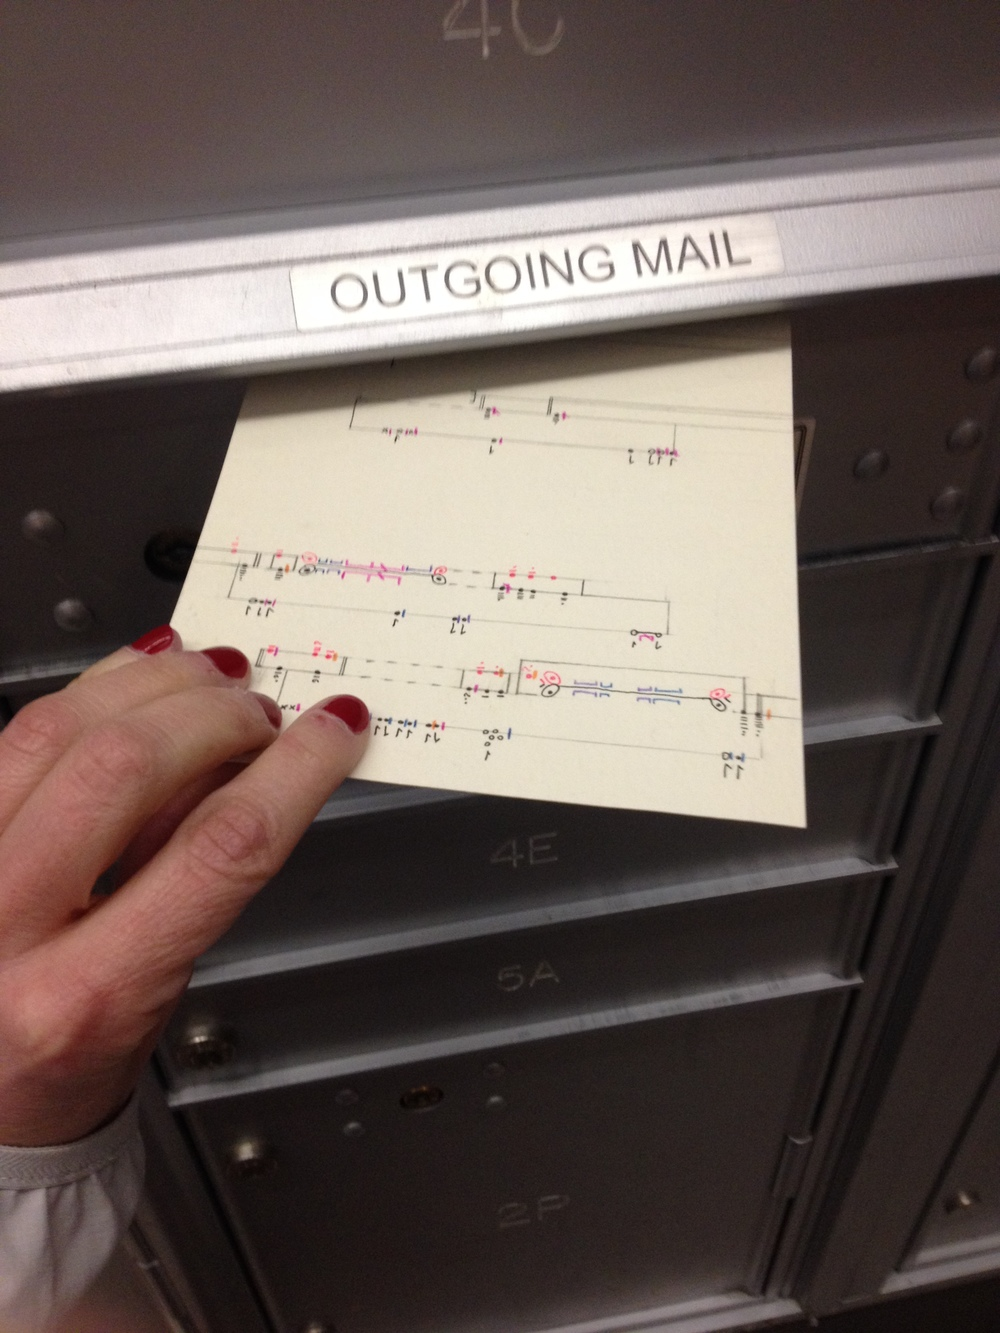 I post my postcards from my building's mailbox - which is so awful ! (Actually, in New York it seems there are no public mailboxes down the road!)